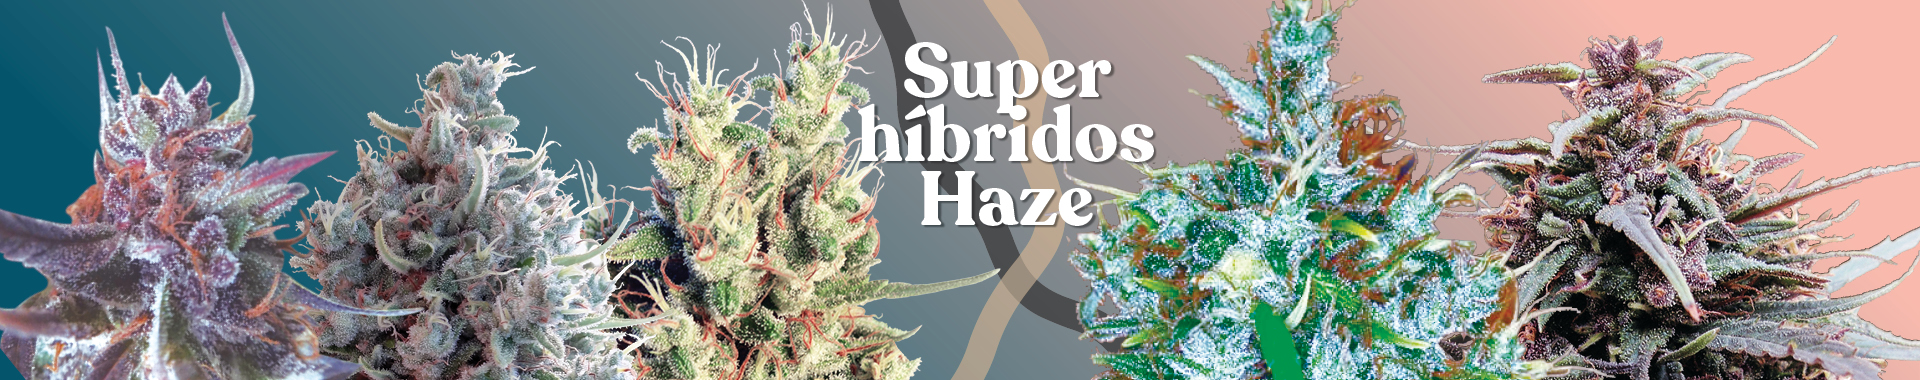 Packs de cría